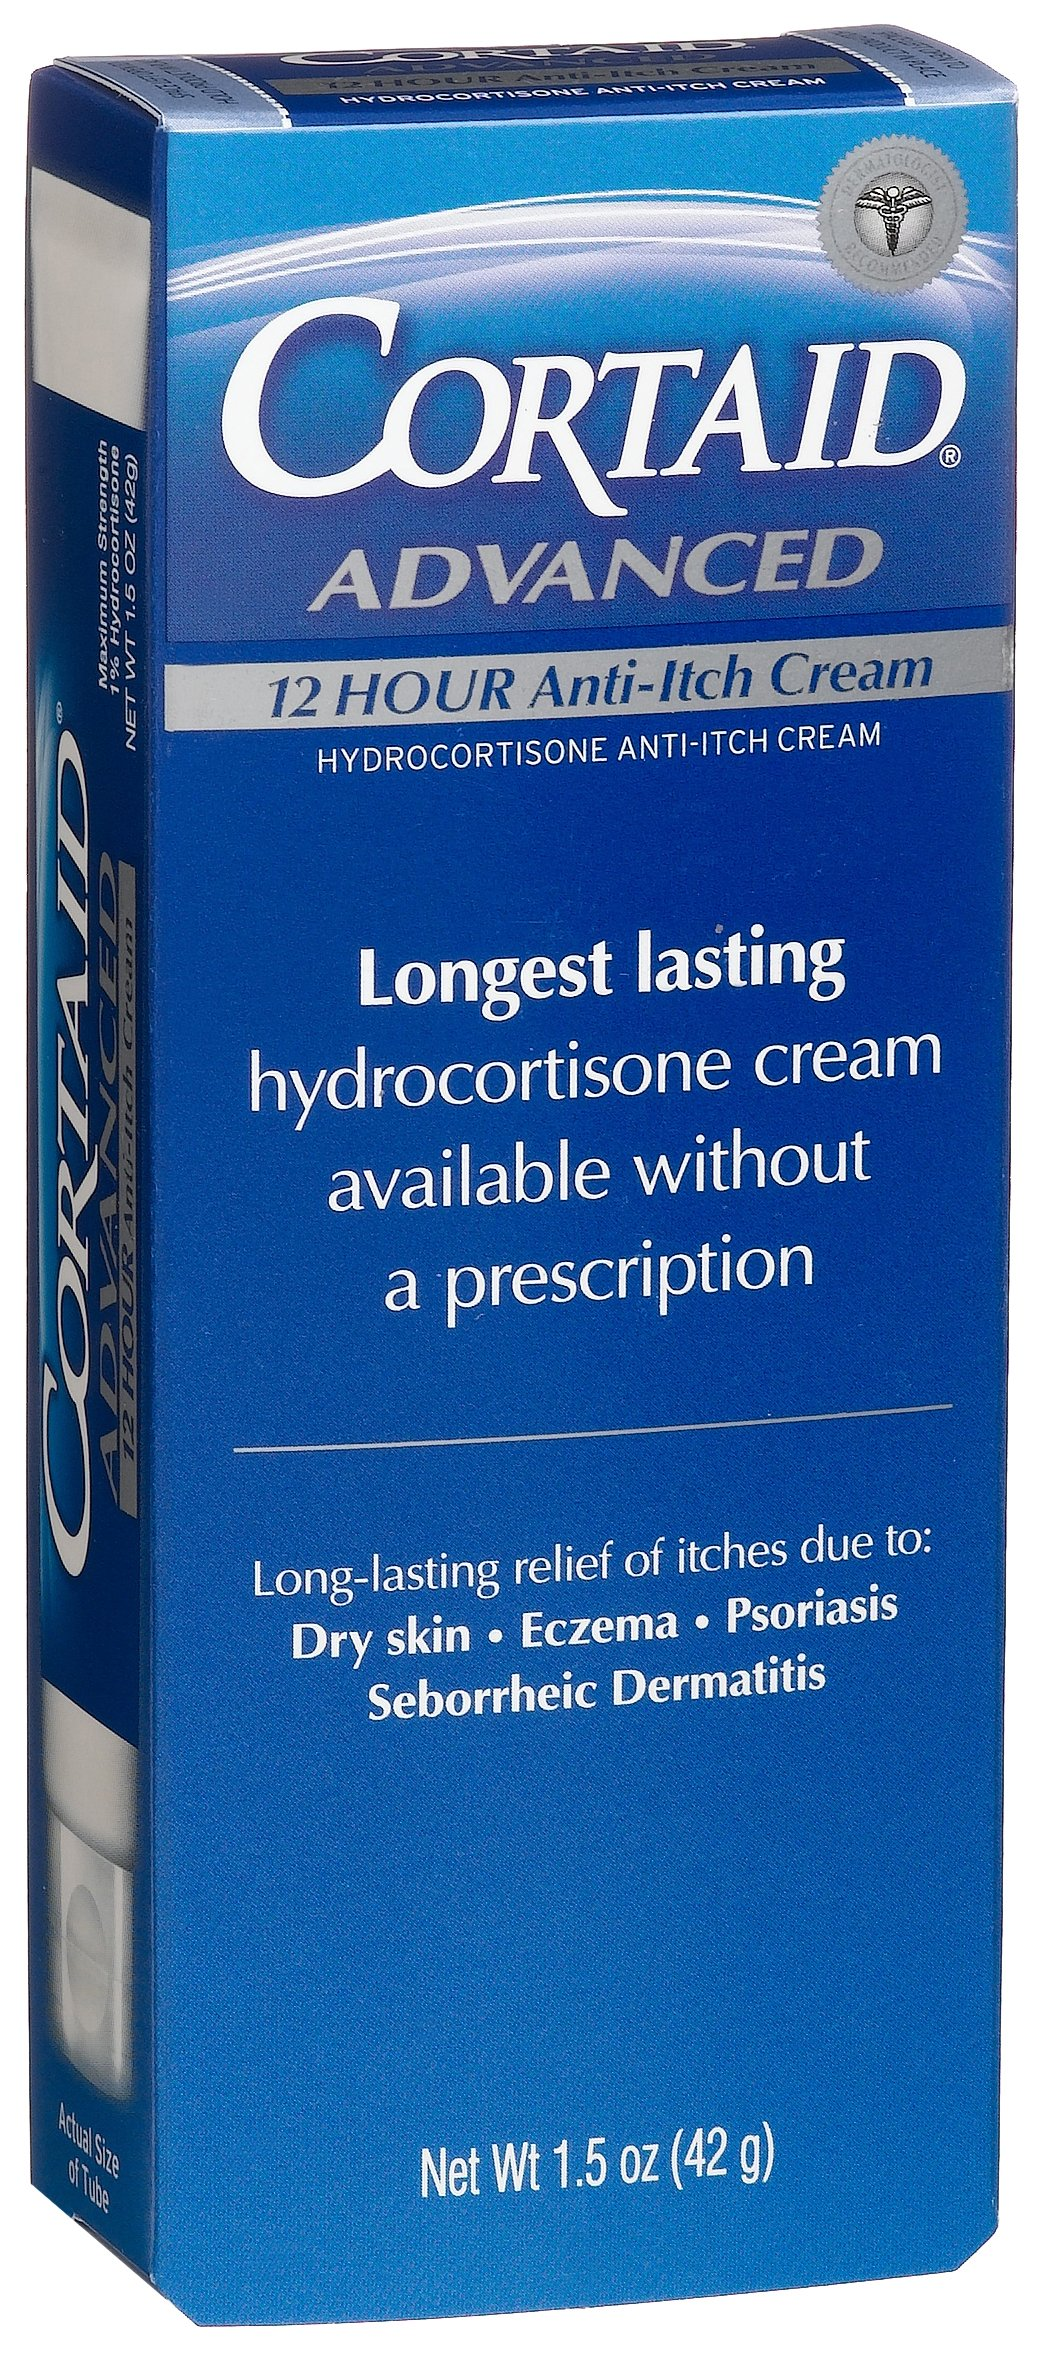 Cortaid Advanced 12 Hour Anti-Itch Cream, 1.5-Ounce Tubes (Pack of 3)